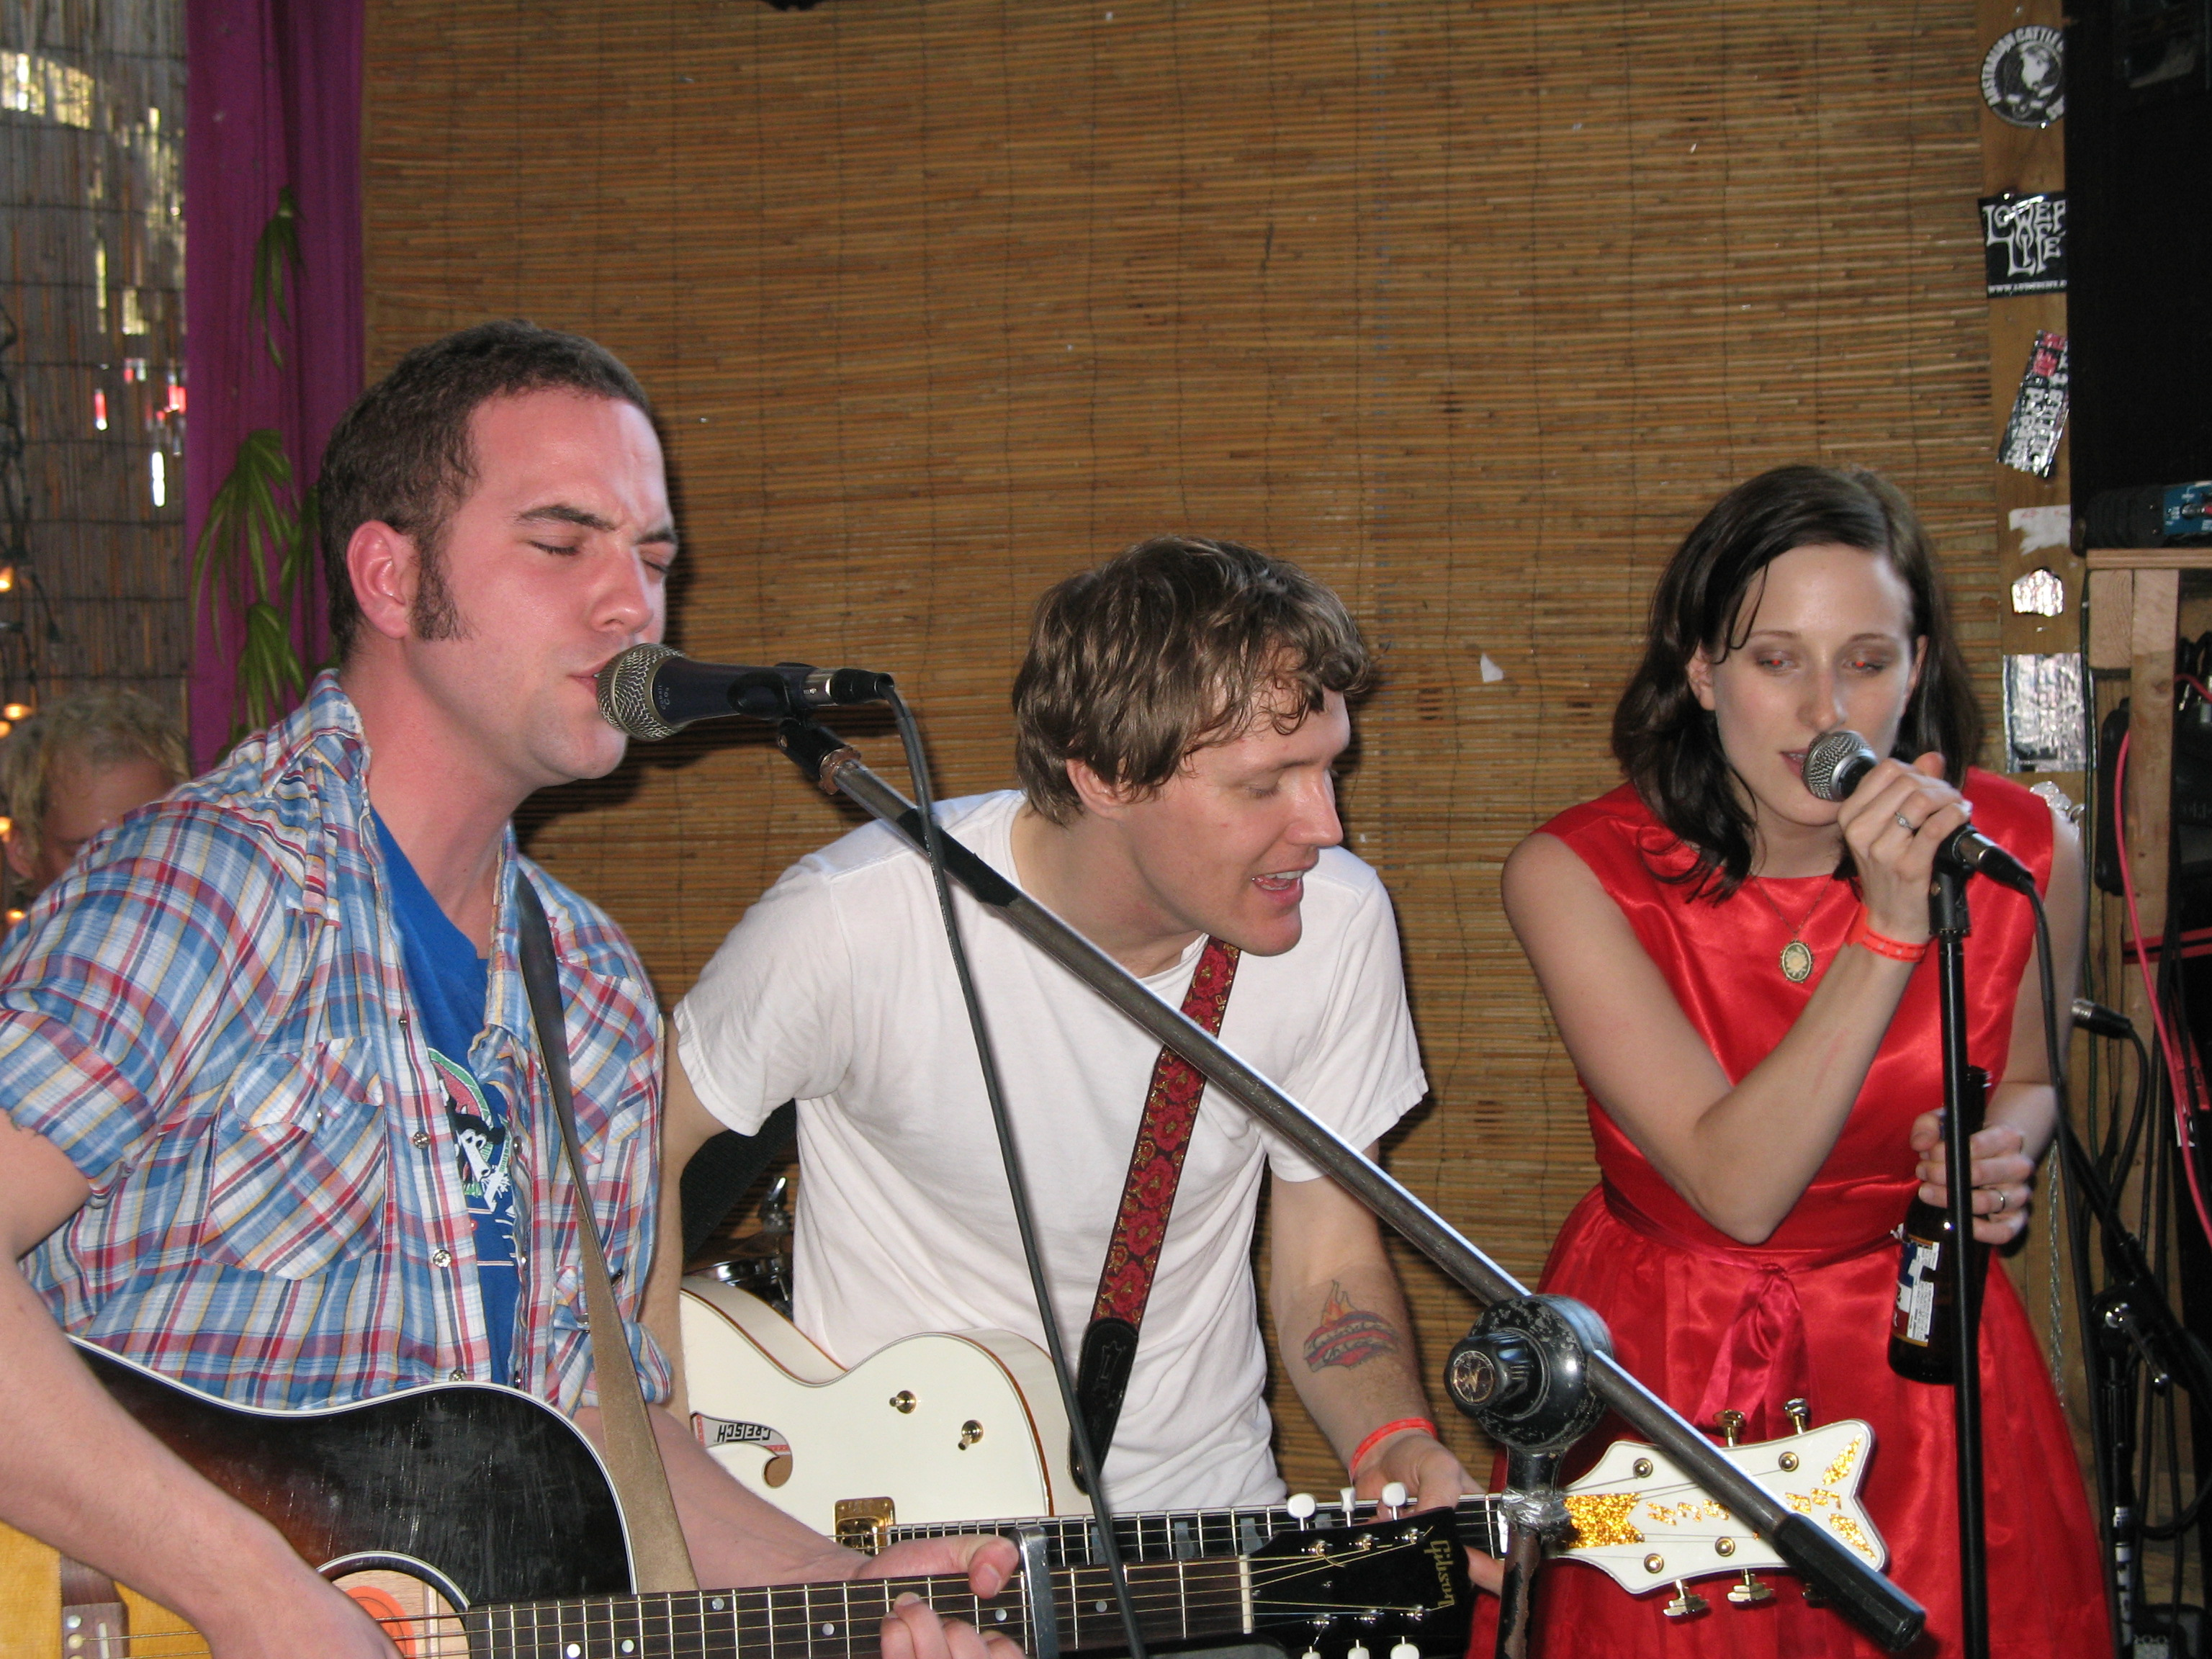 The Six Shooter supergroup: Justin, Luke and Melissa